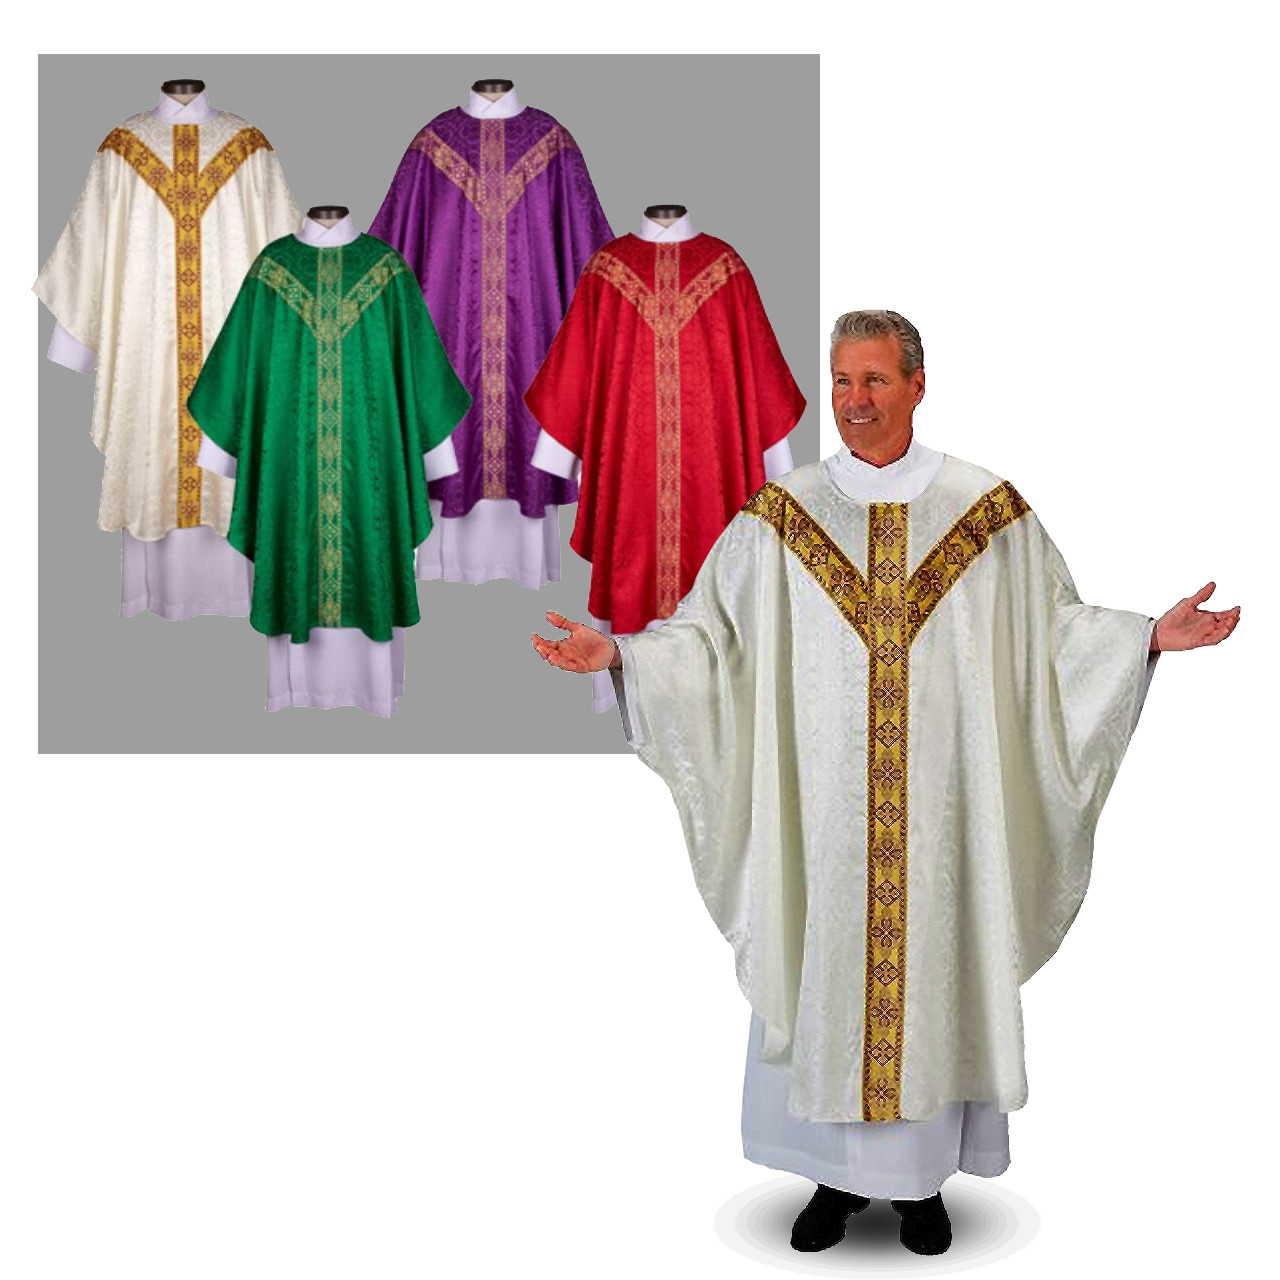 Avignon Chasuble Collection Set of 4